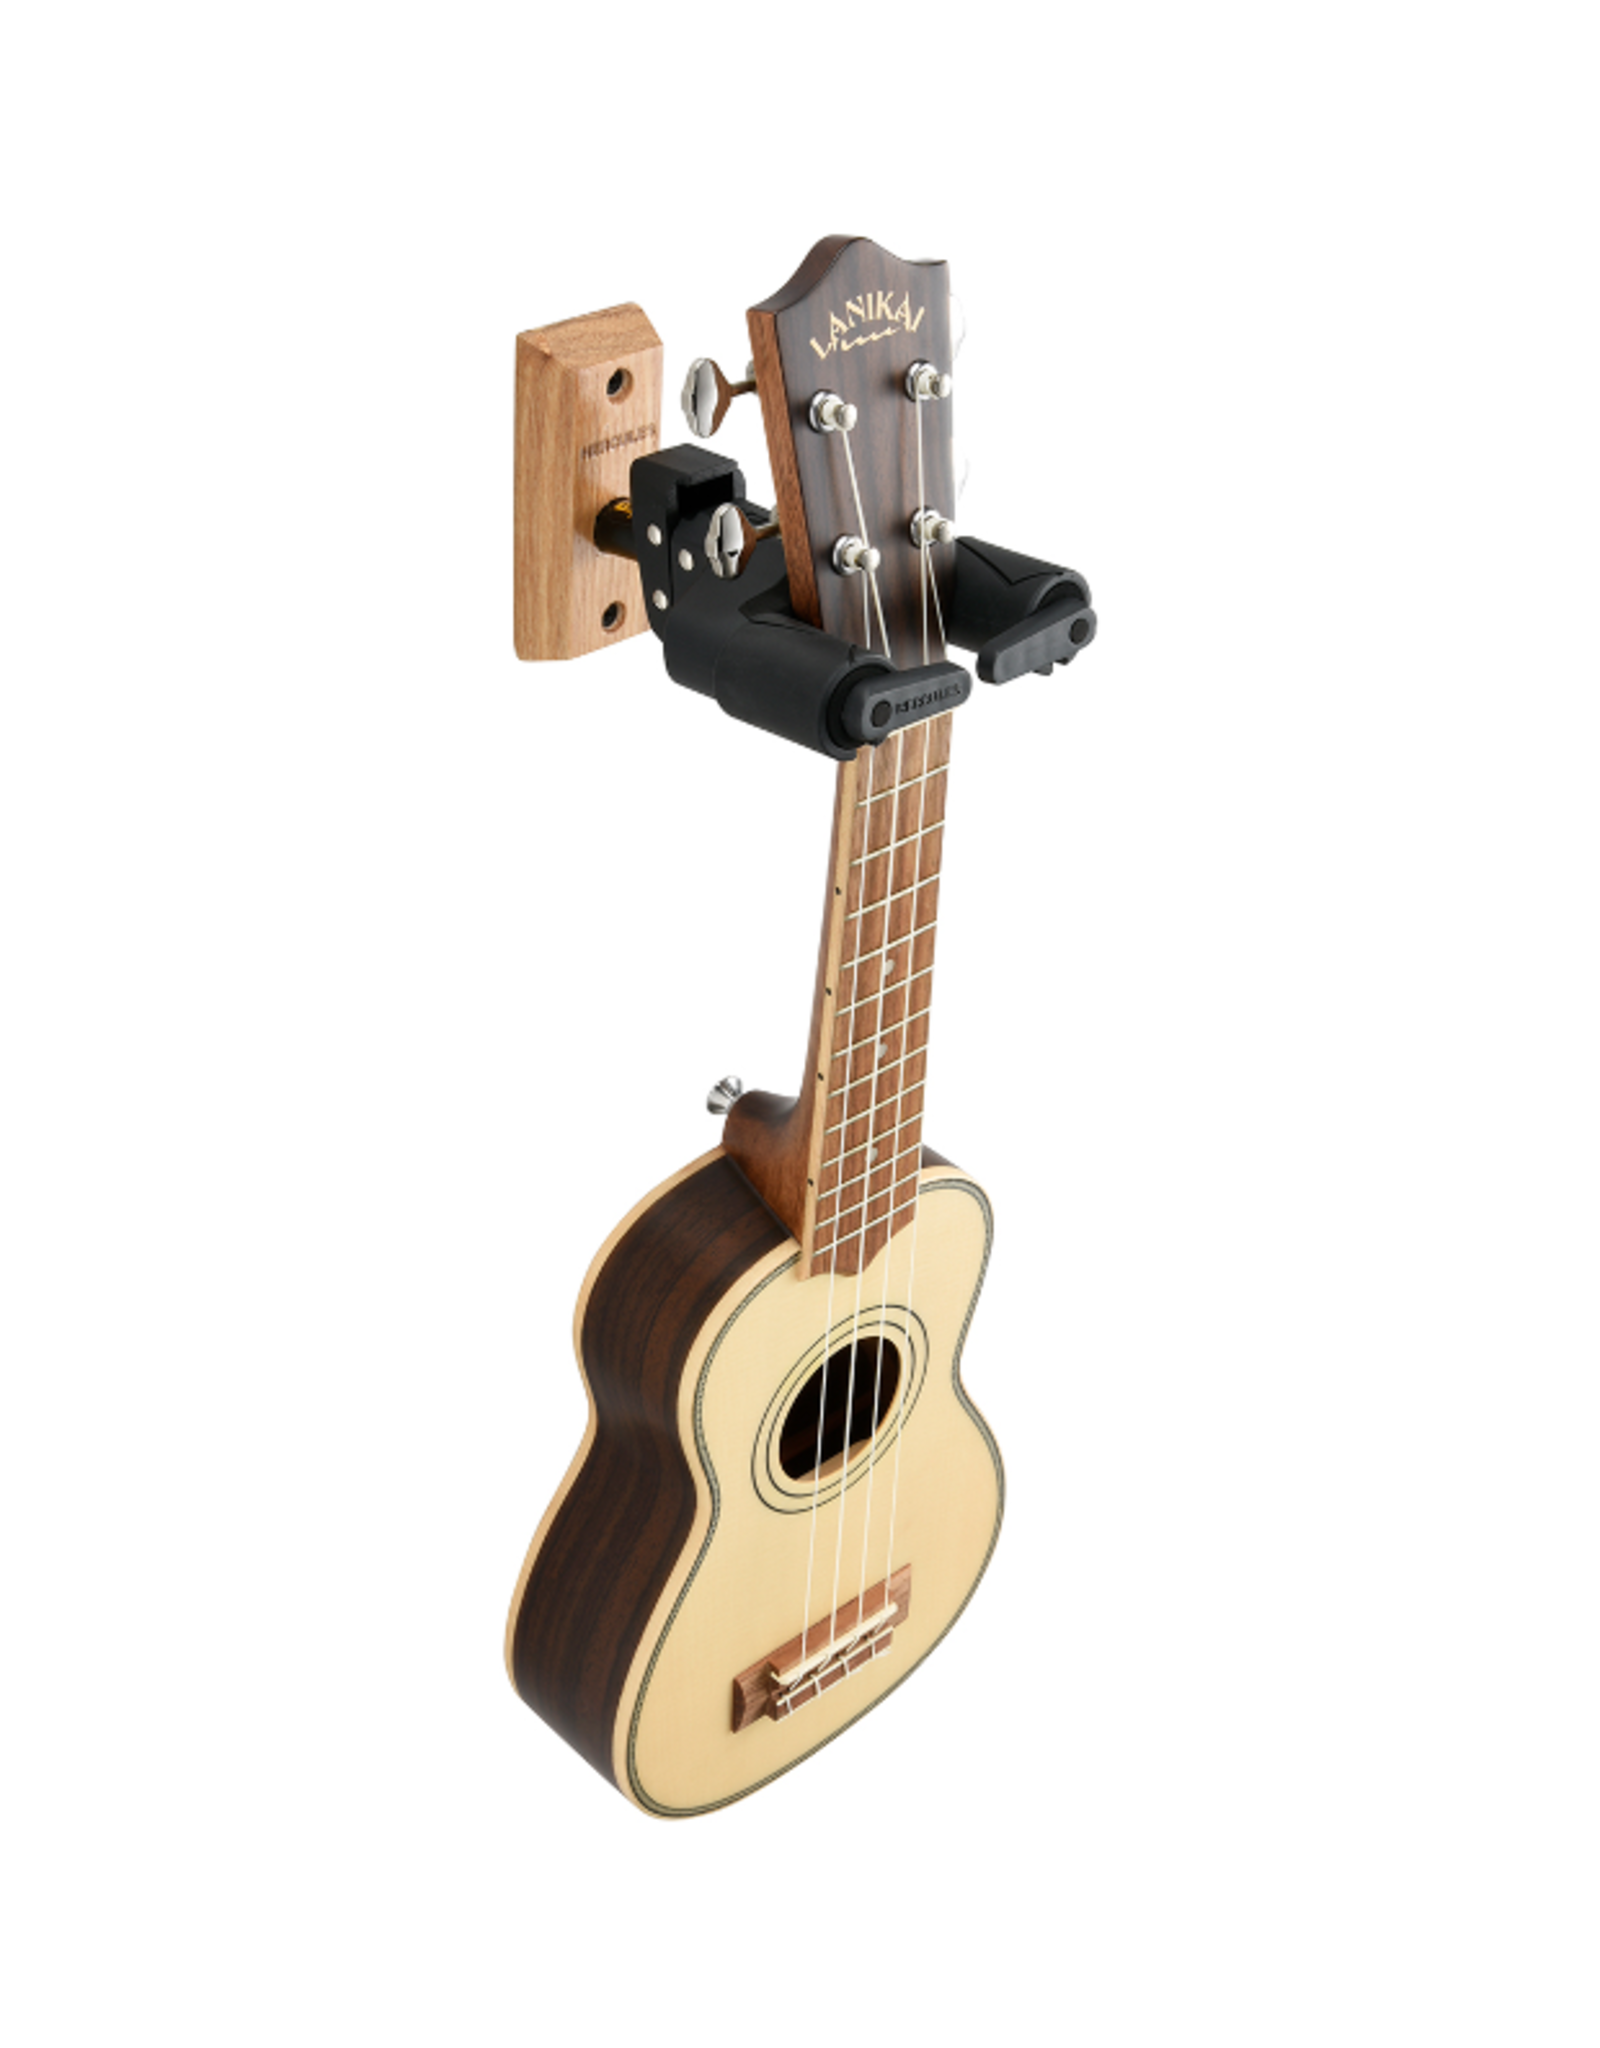 Hercules Hercules Narrow Instrument Neck Adjustment Cuffs for PLUS Series Stands  ‐  2 pa